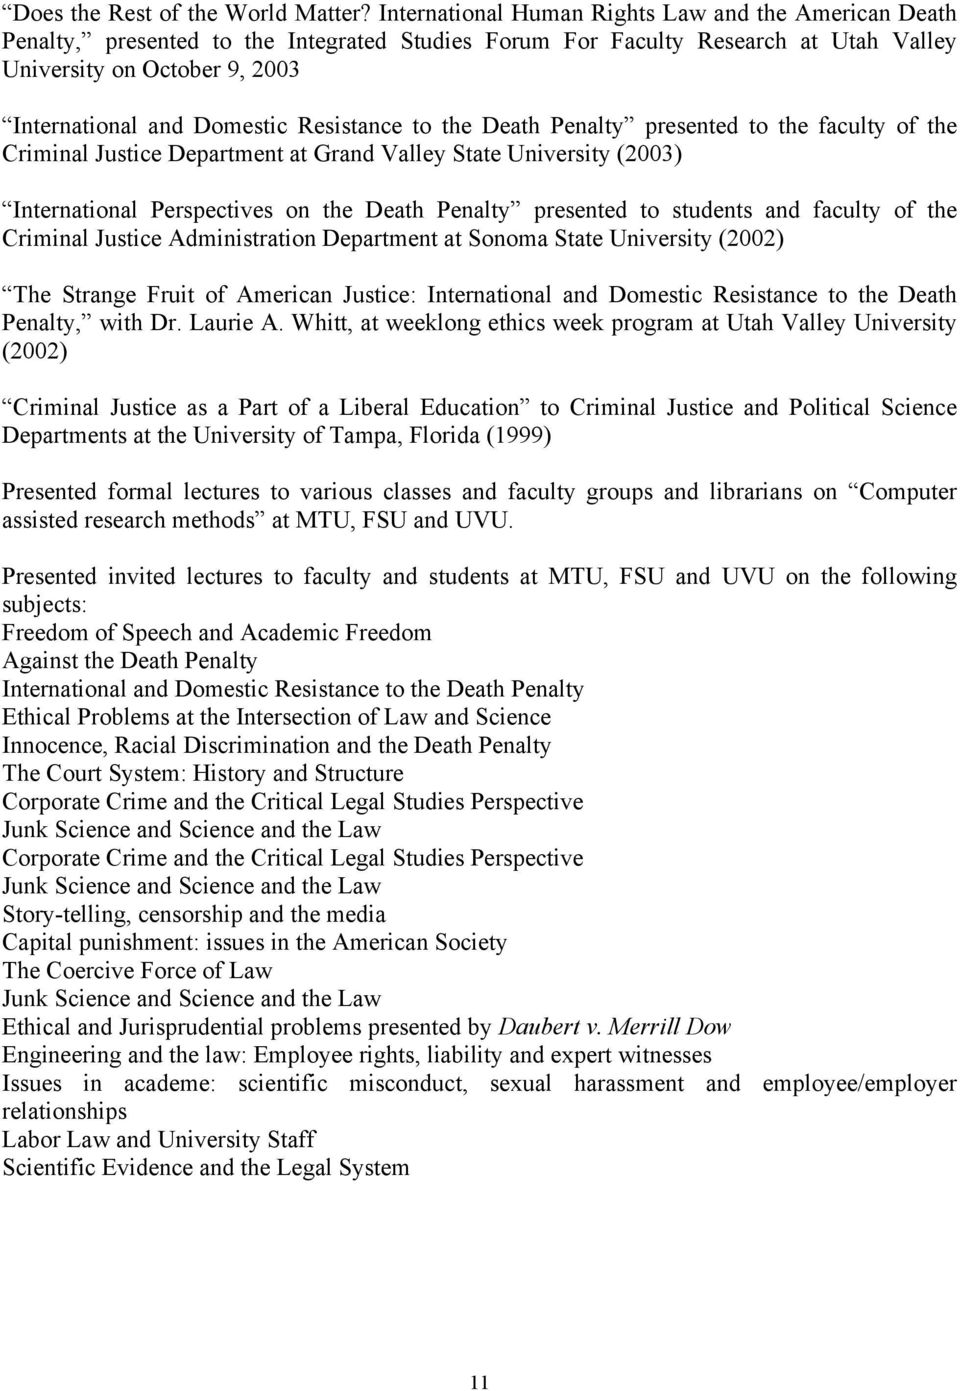 Resistance to the Death Penalty presented to the faculty of the Criminal Justice Department at Grand Valley State University (2003) International Perspectives on the Death Penalty presented to